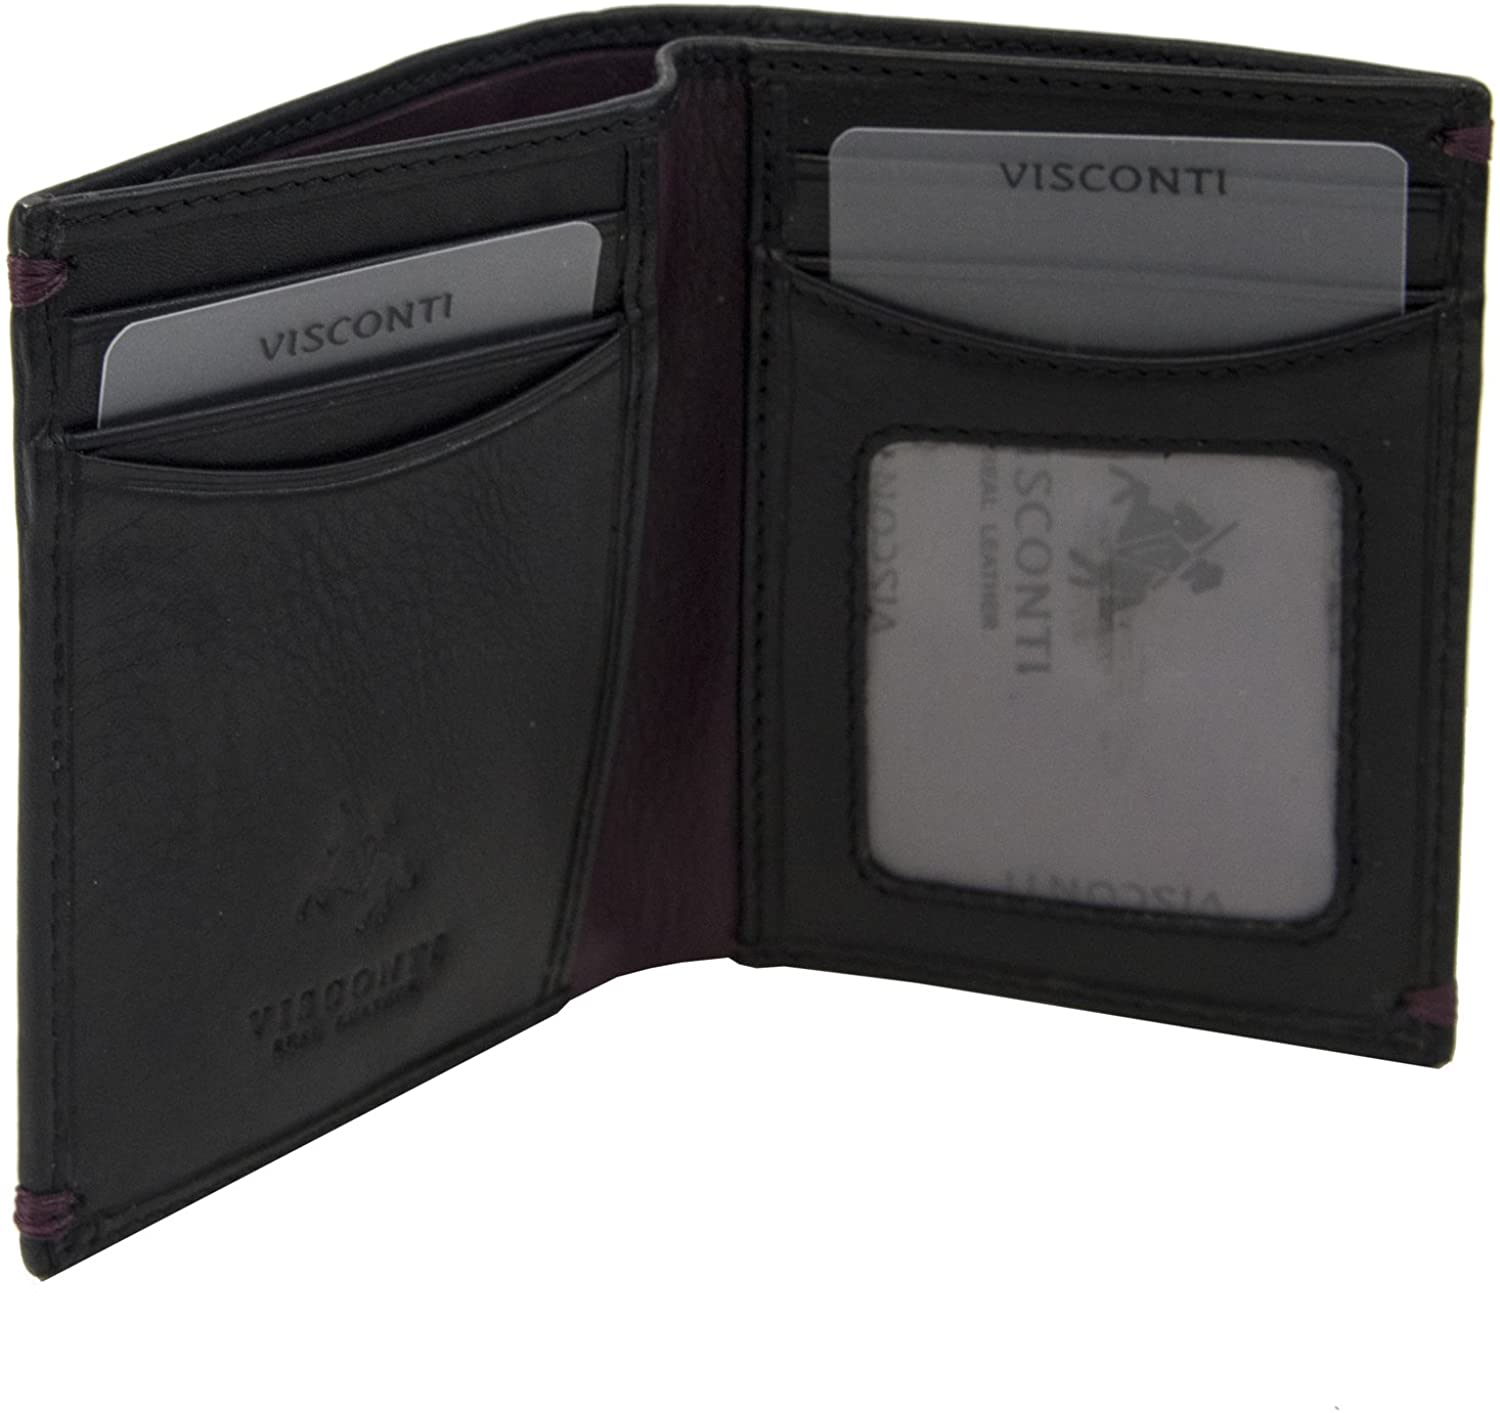 Visconti AP60 Thun Genuine Leather Mens Bi-fold Wallet